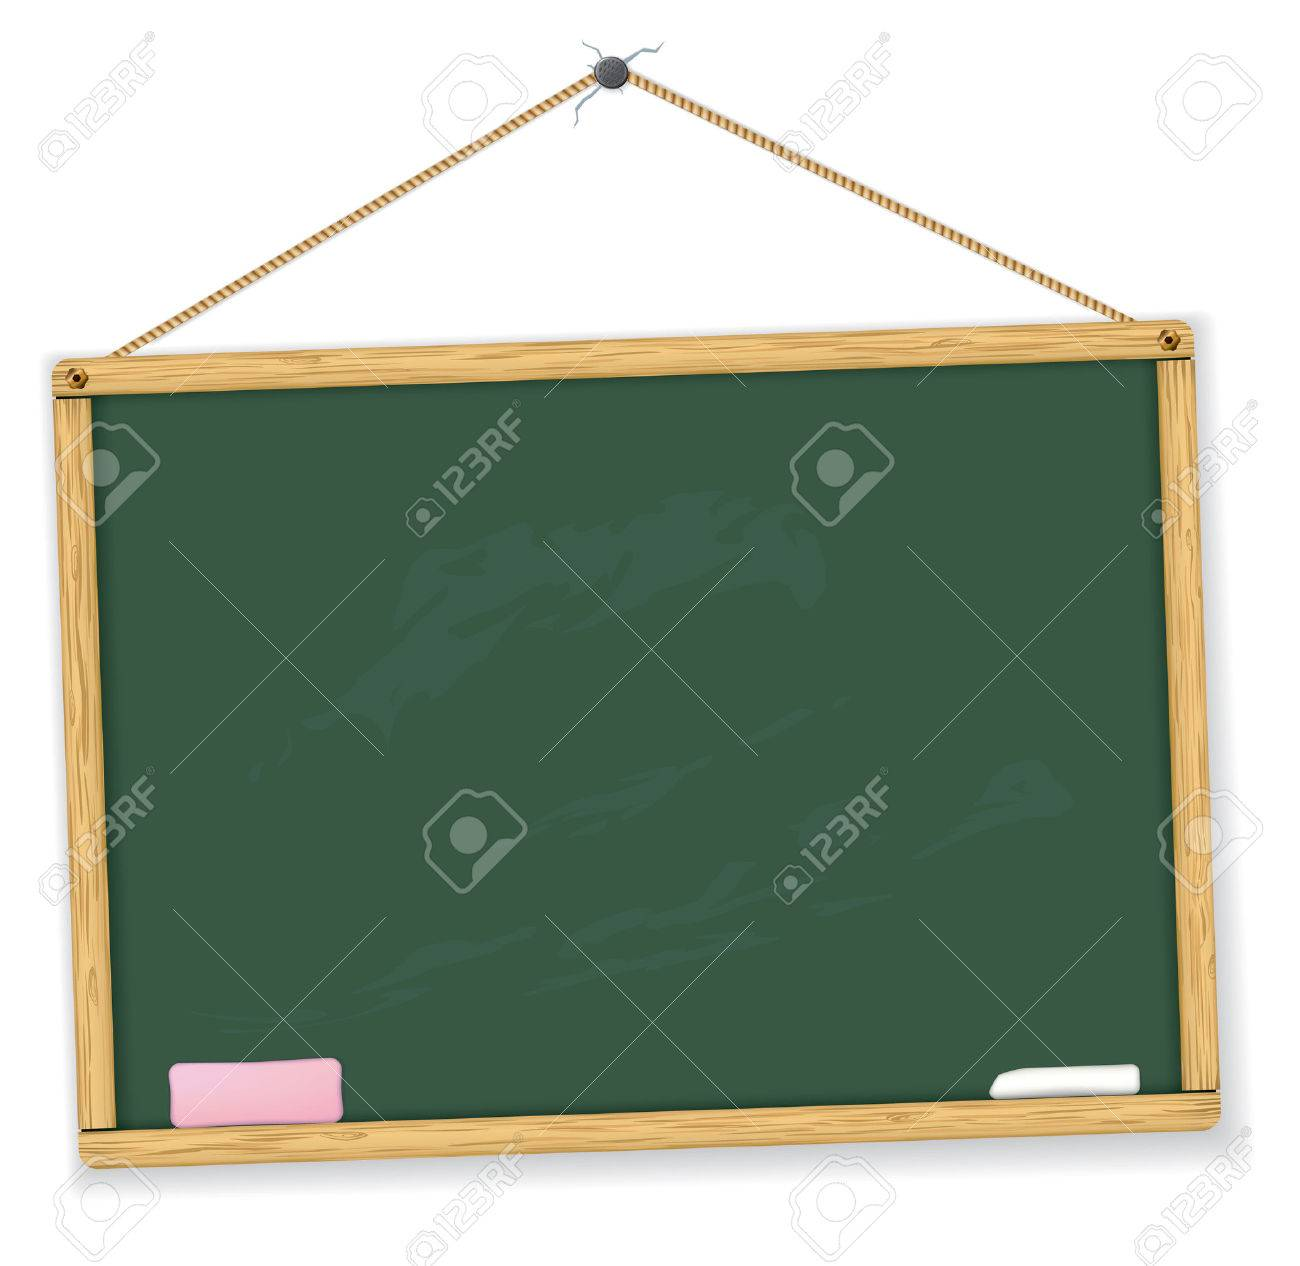 blackboard. Highly detailed. Easy to edit. Education collection. - 5658016